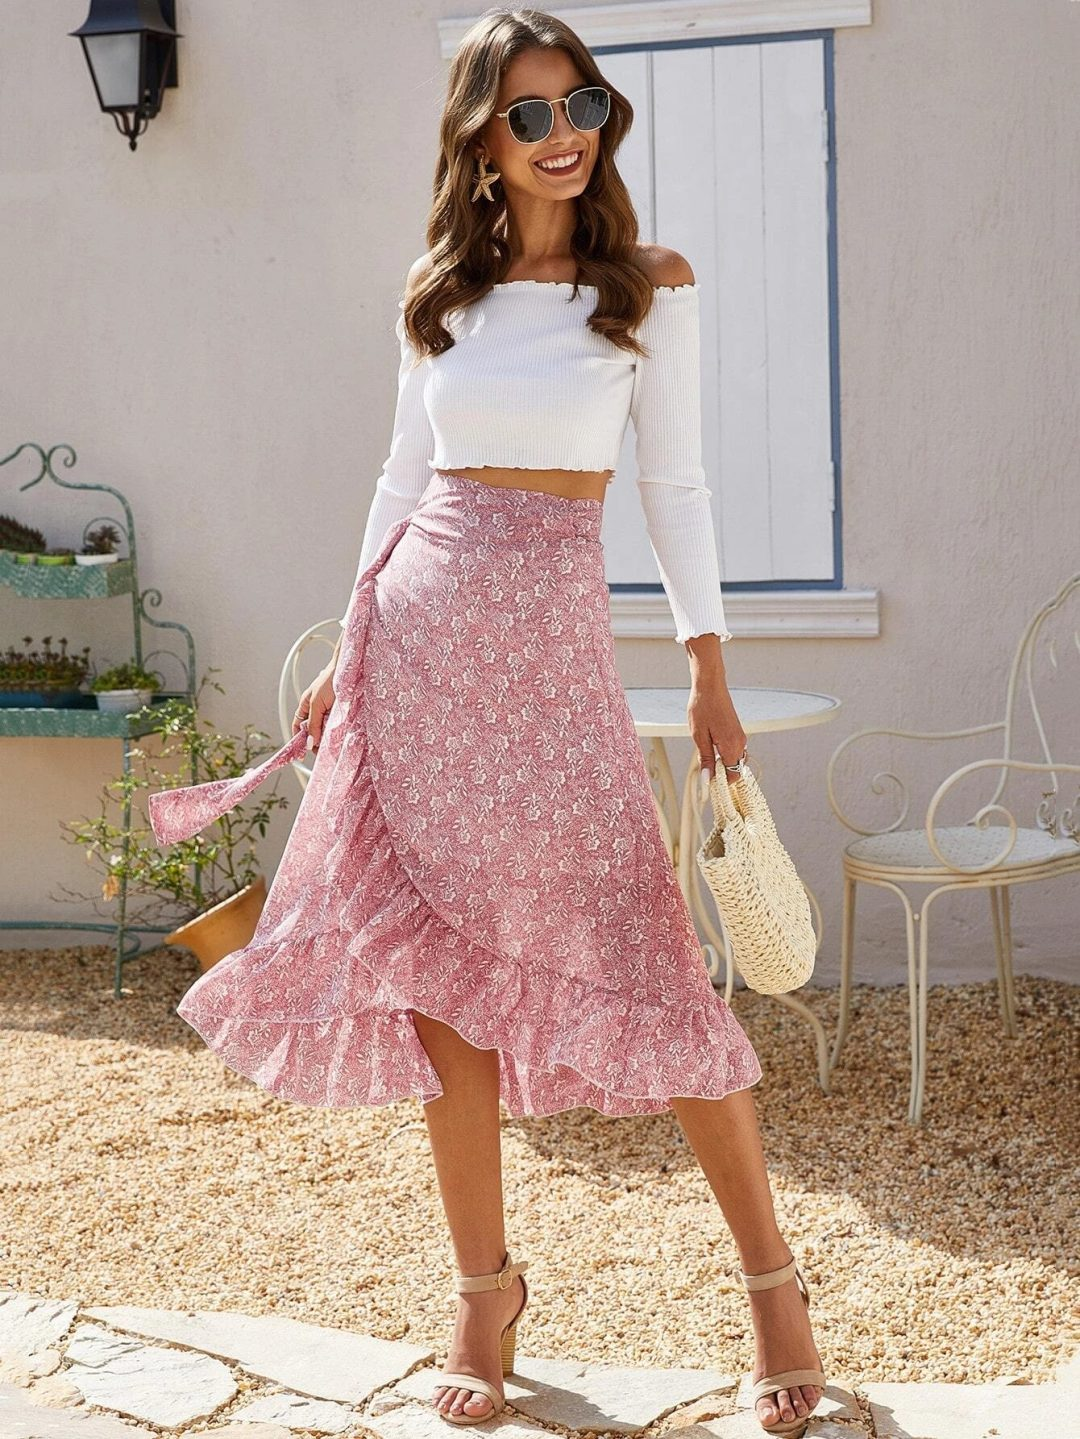 Pink flowy midi skirt with white crop top